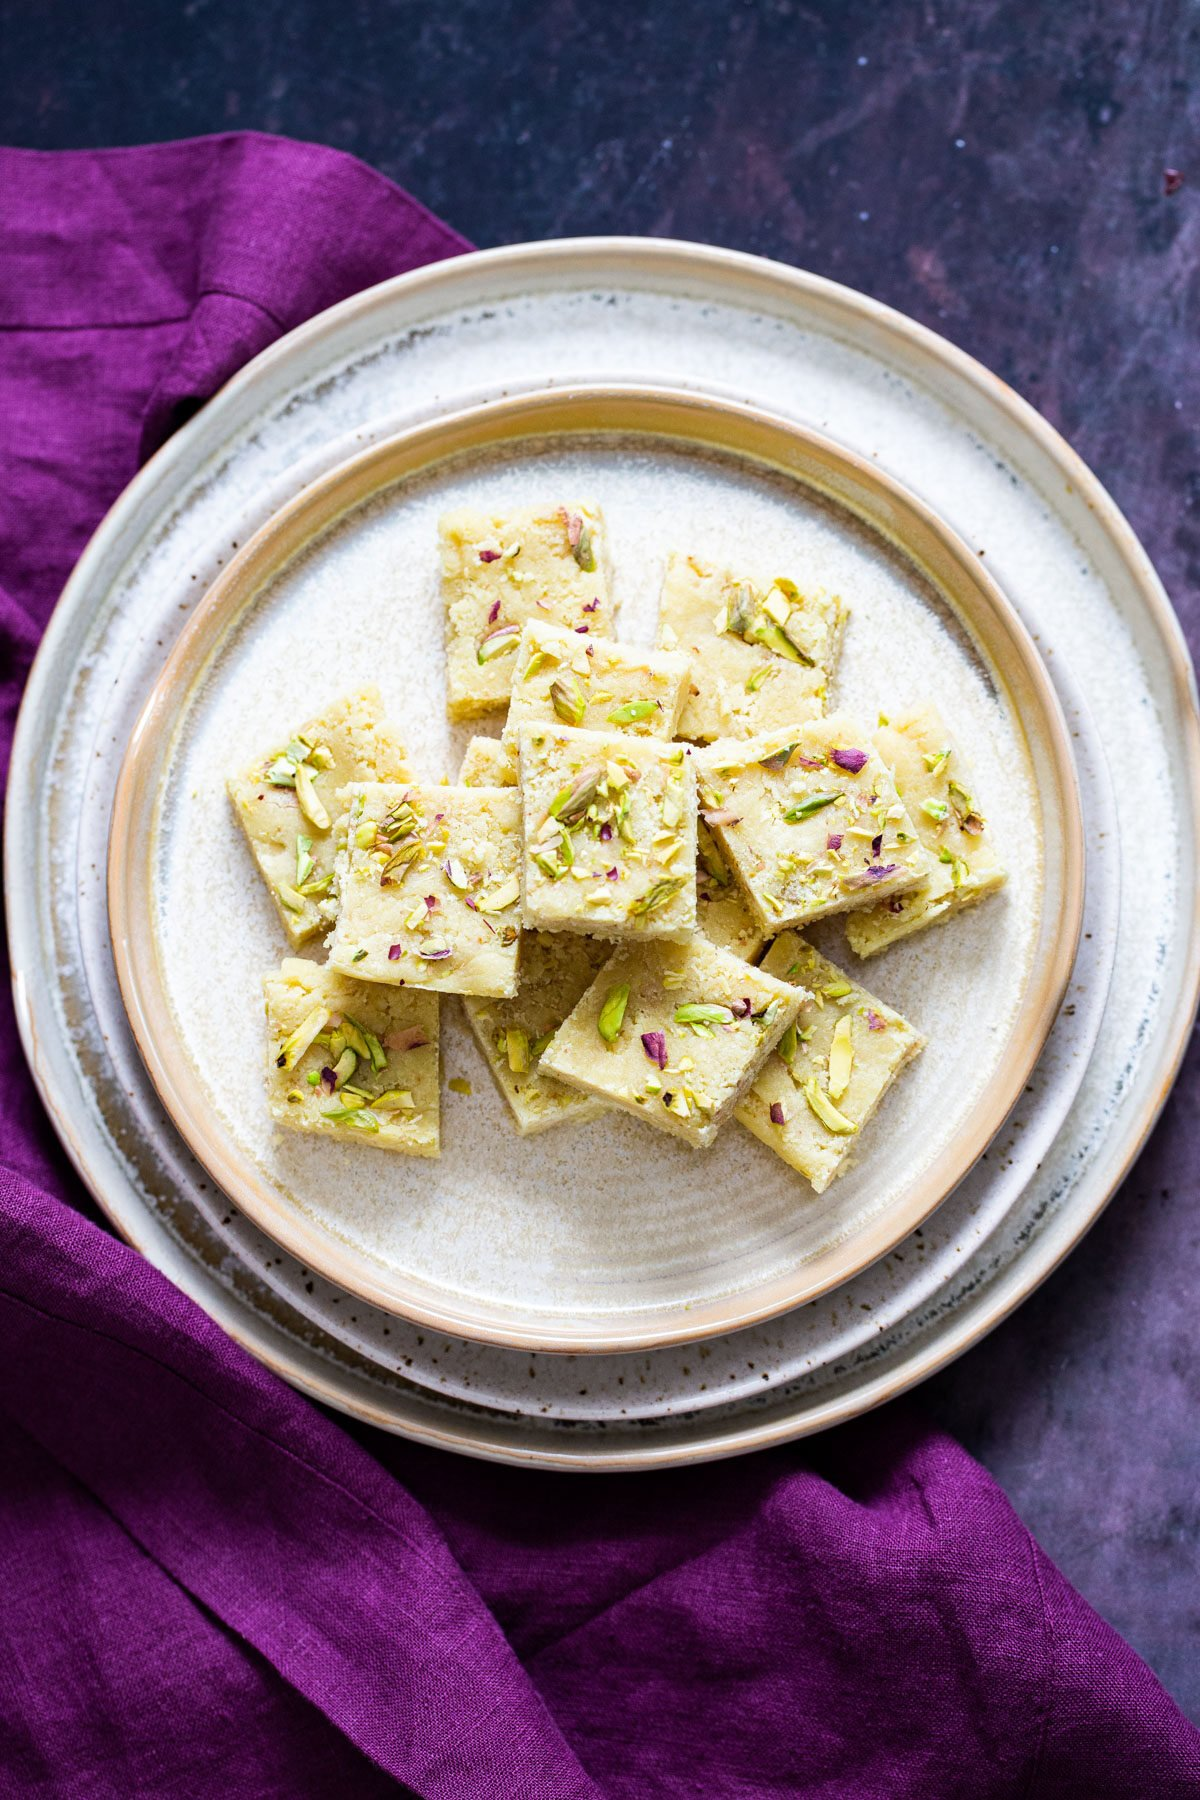 a plate with almond burfi topped with chopped pistachios and almonds